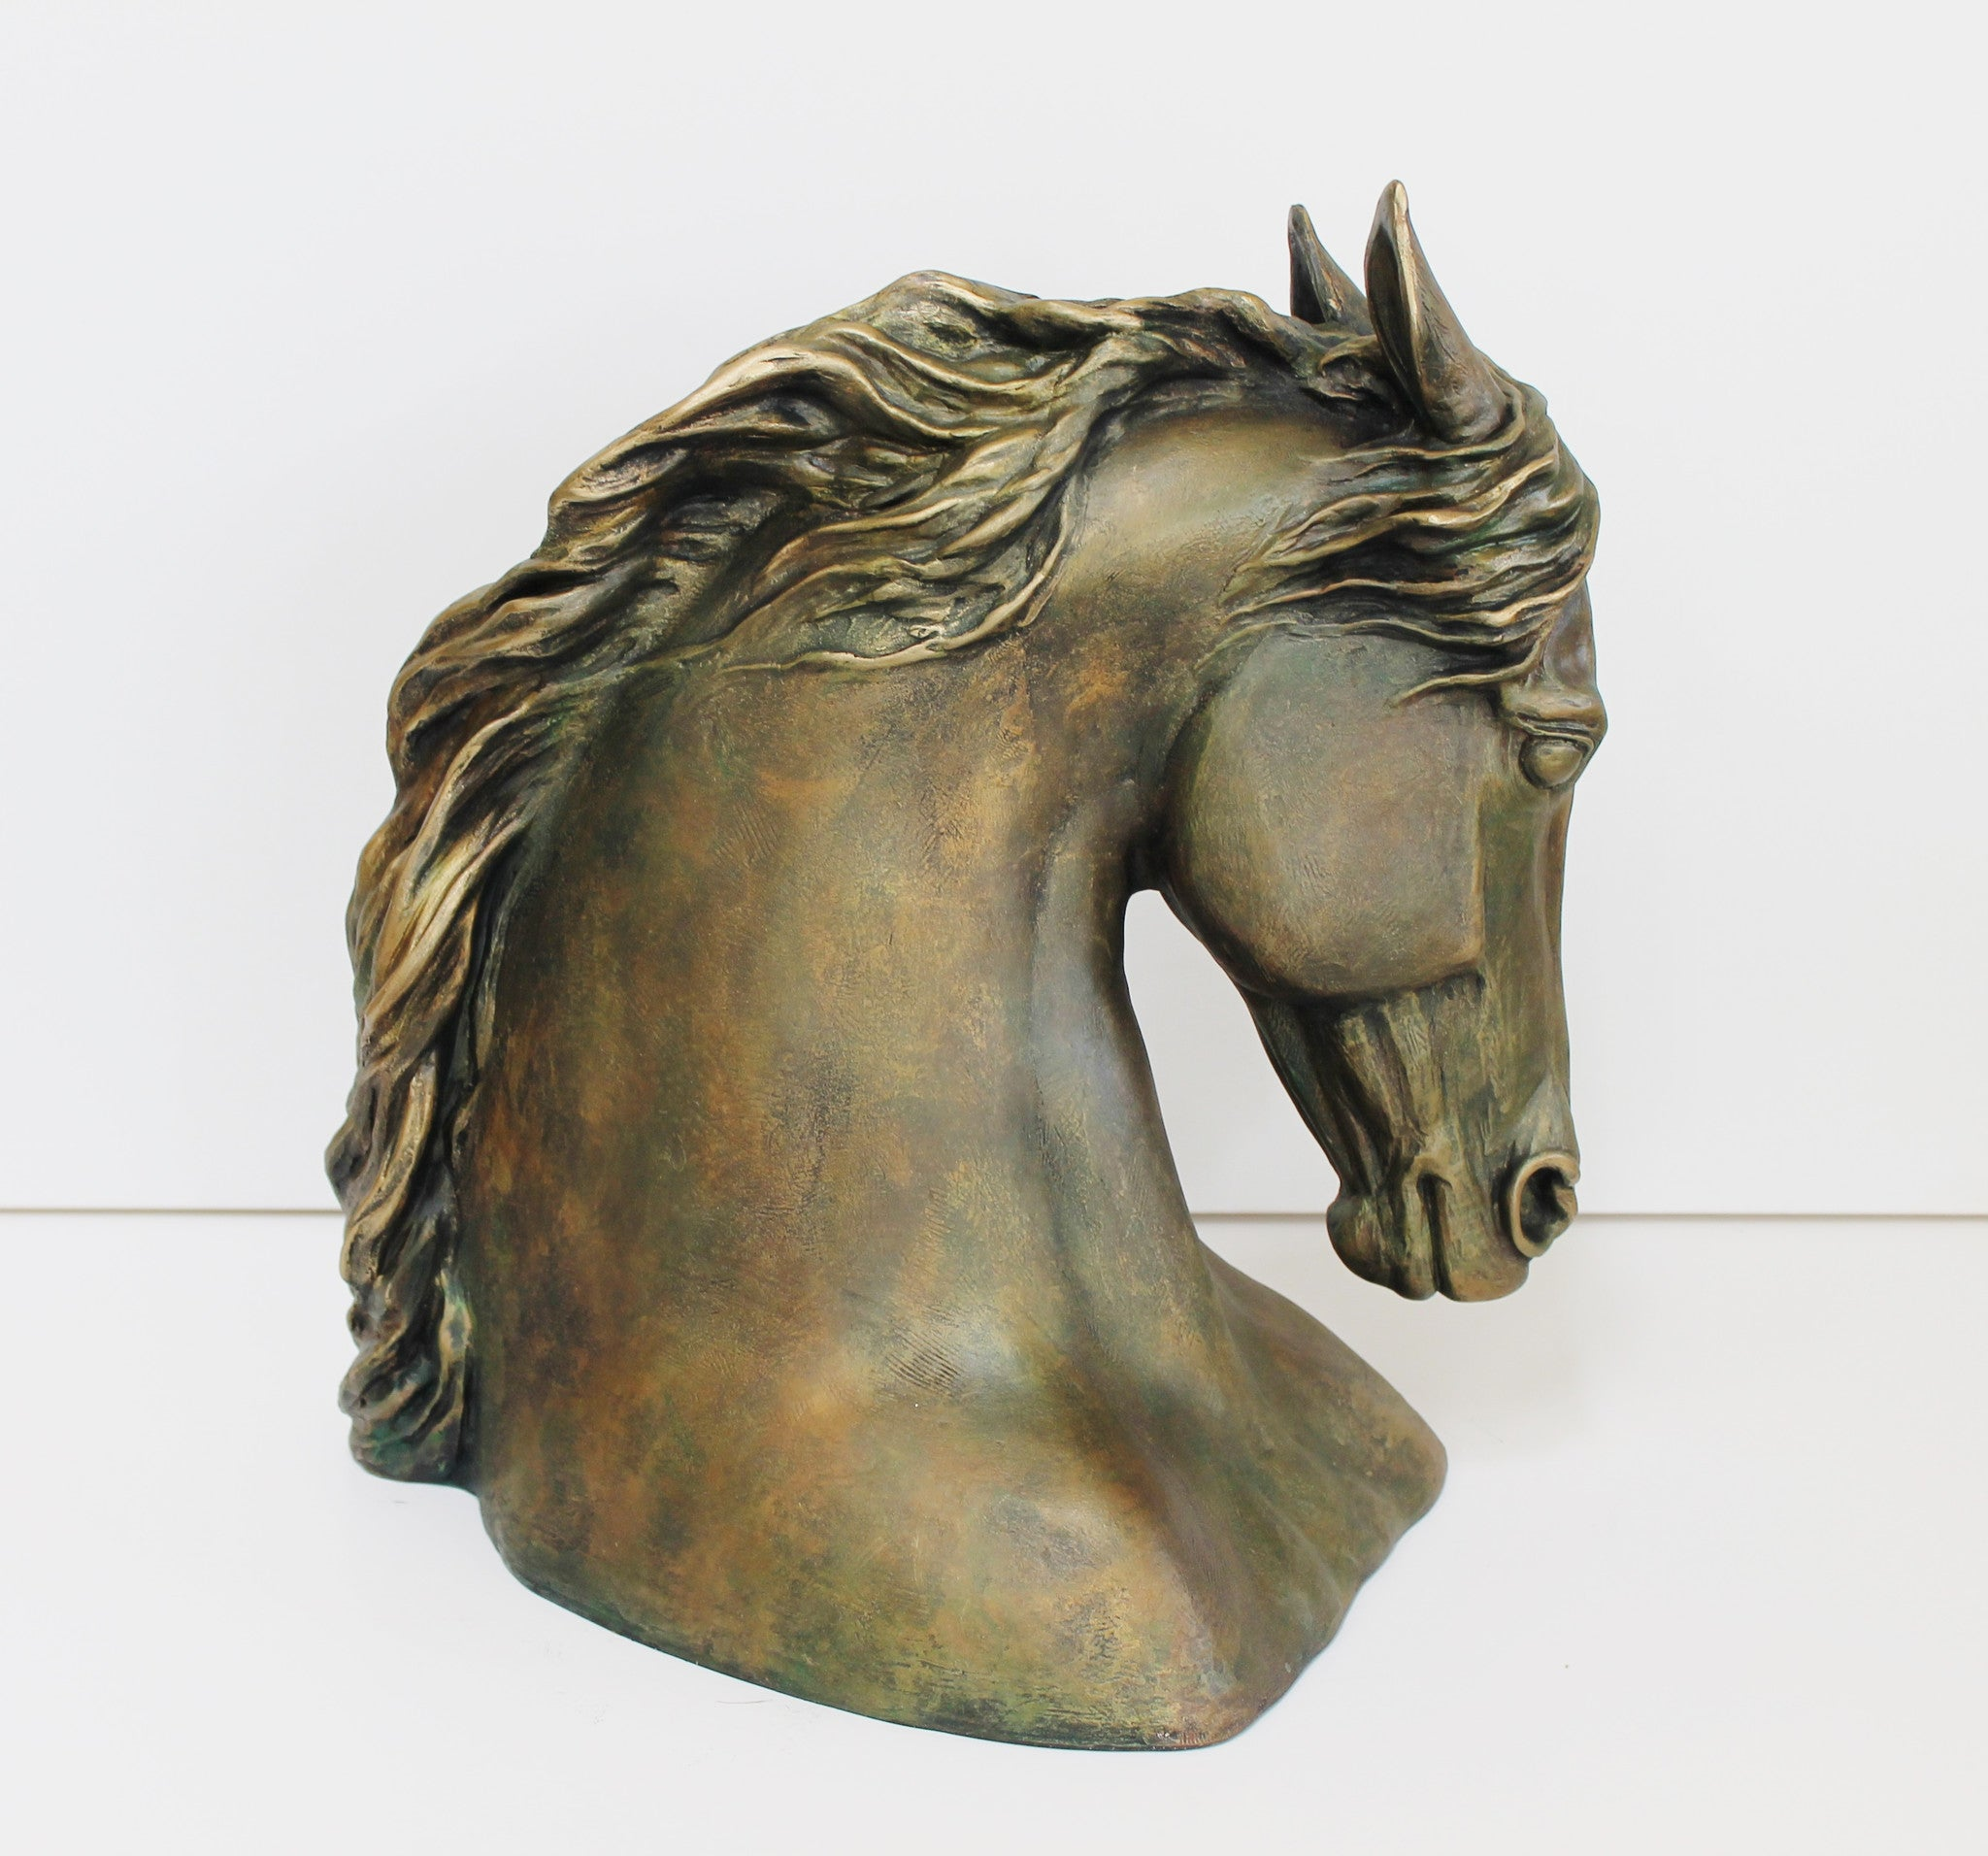 Horse Head Sculpture - faux bronze colorPatricia Borum - 1